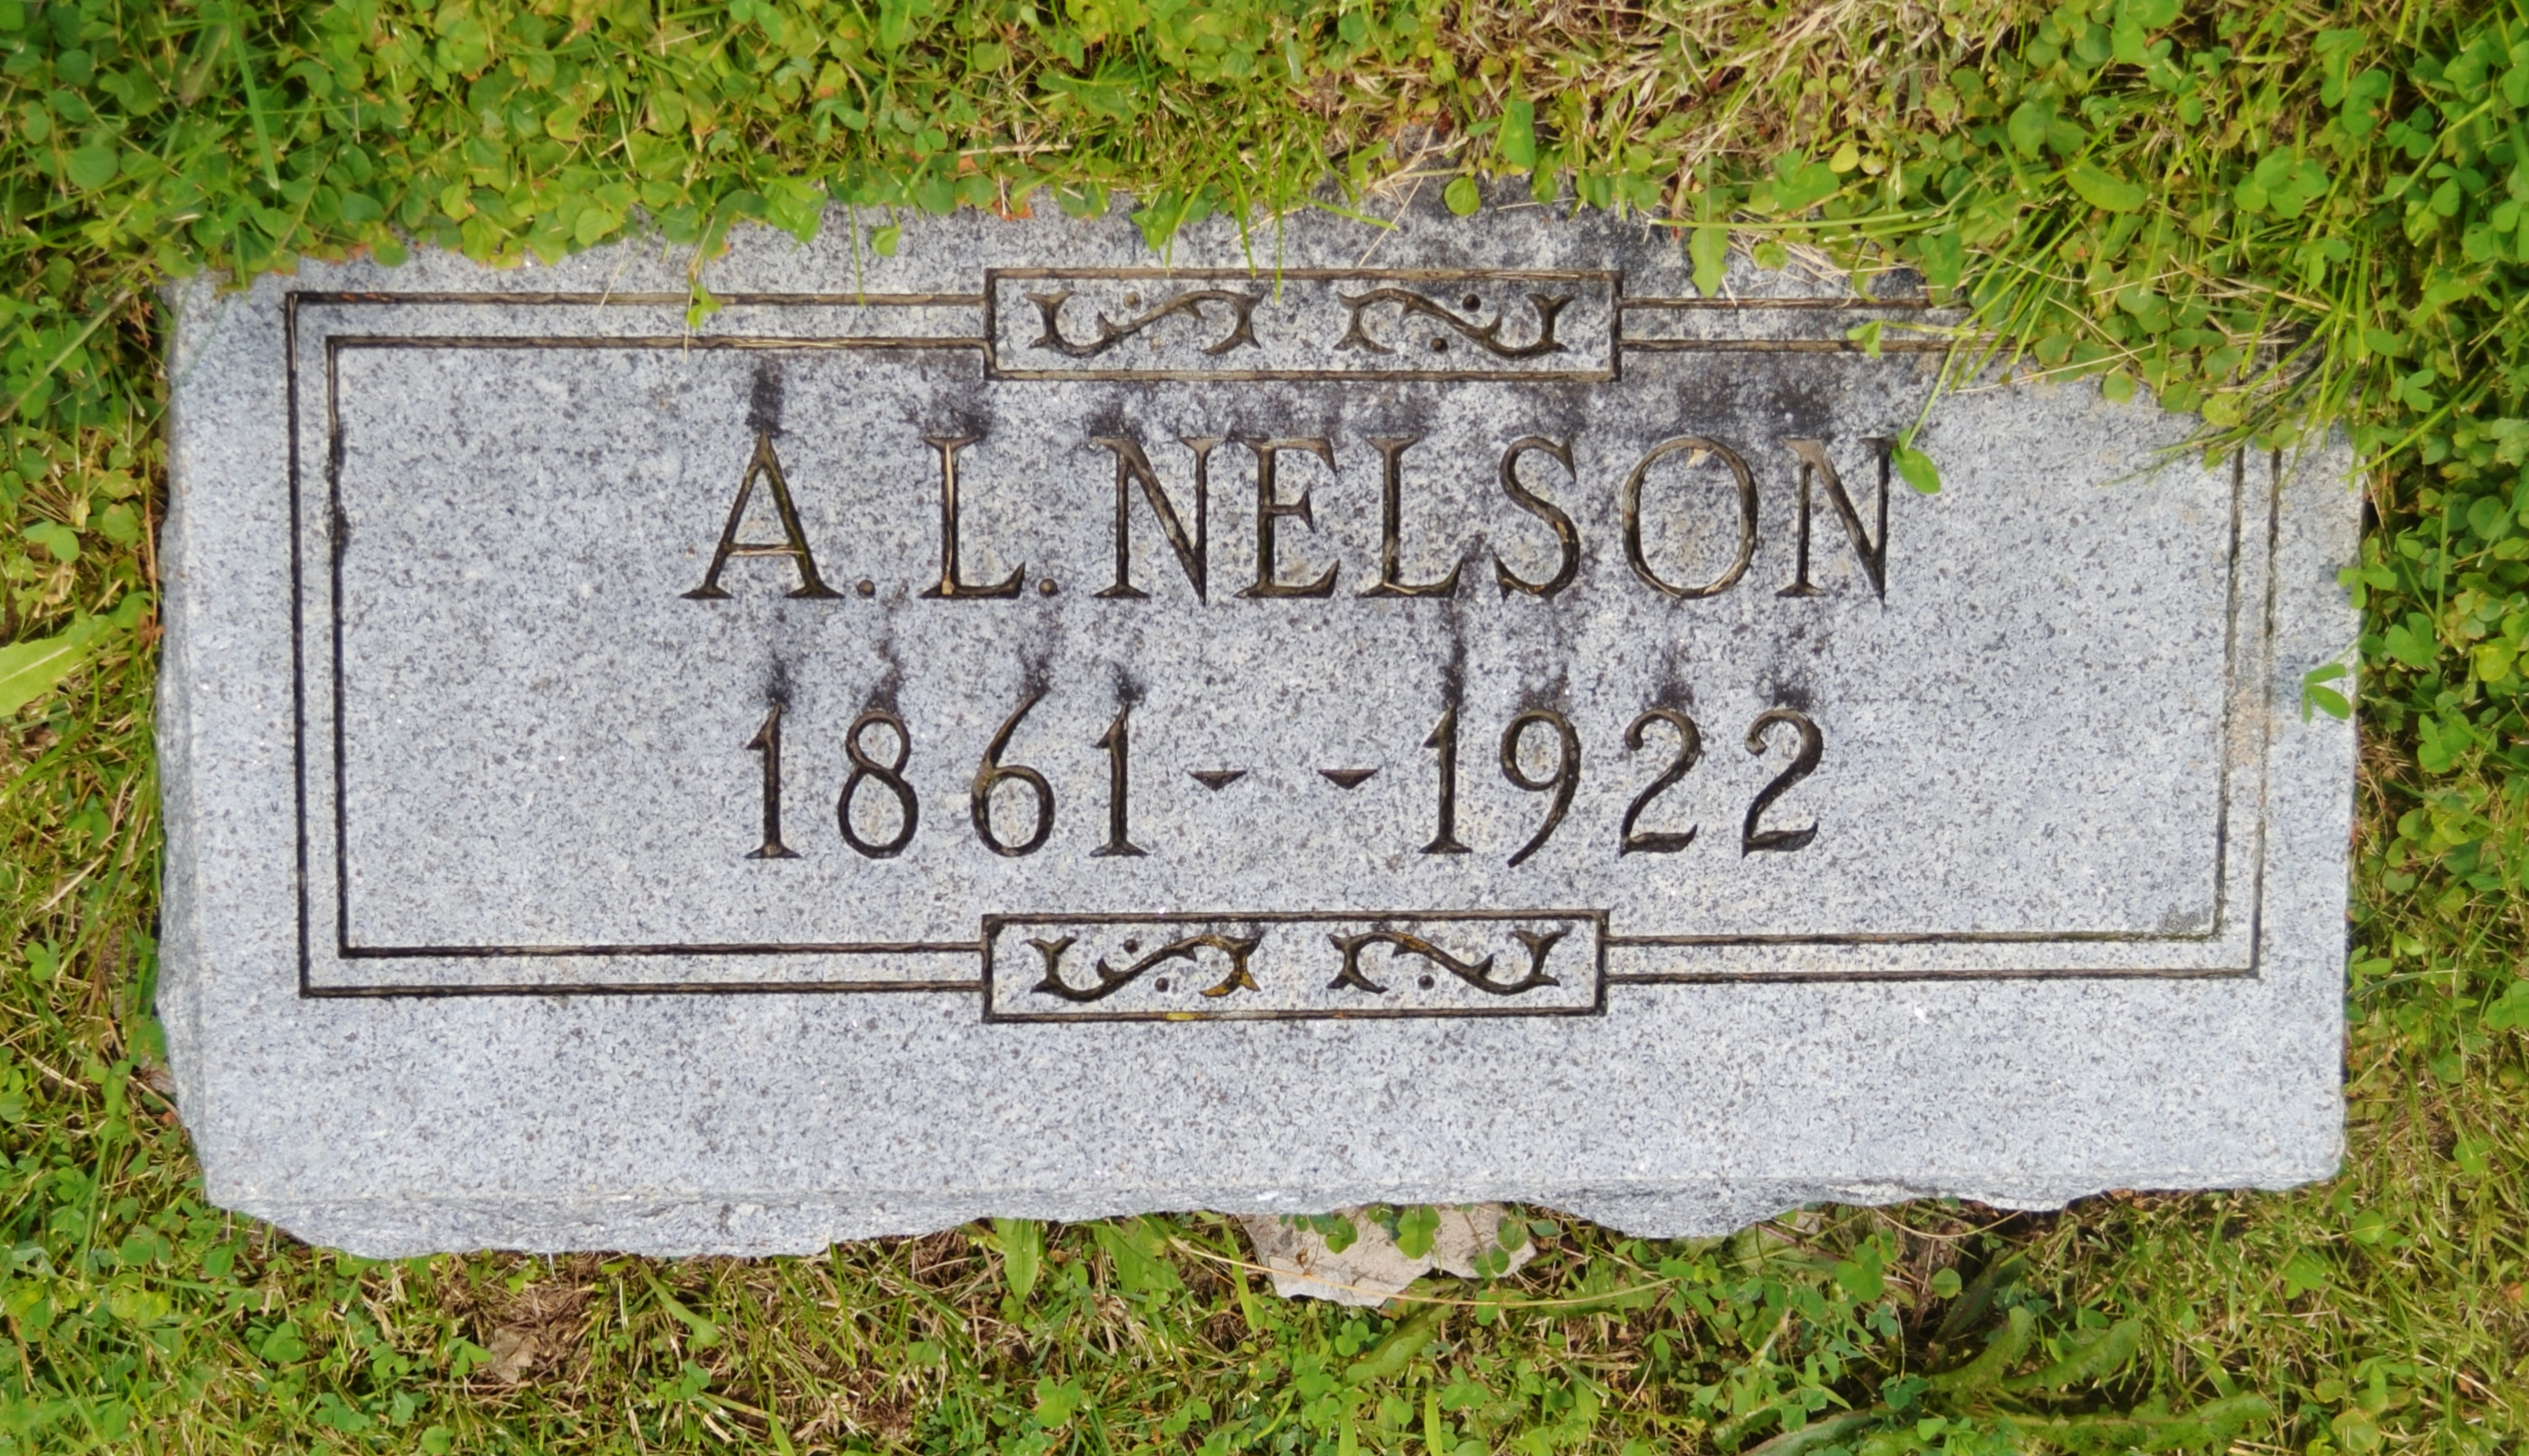 A. L. Nelson